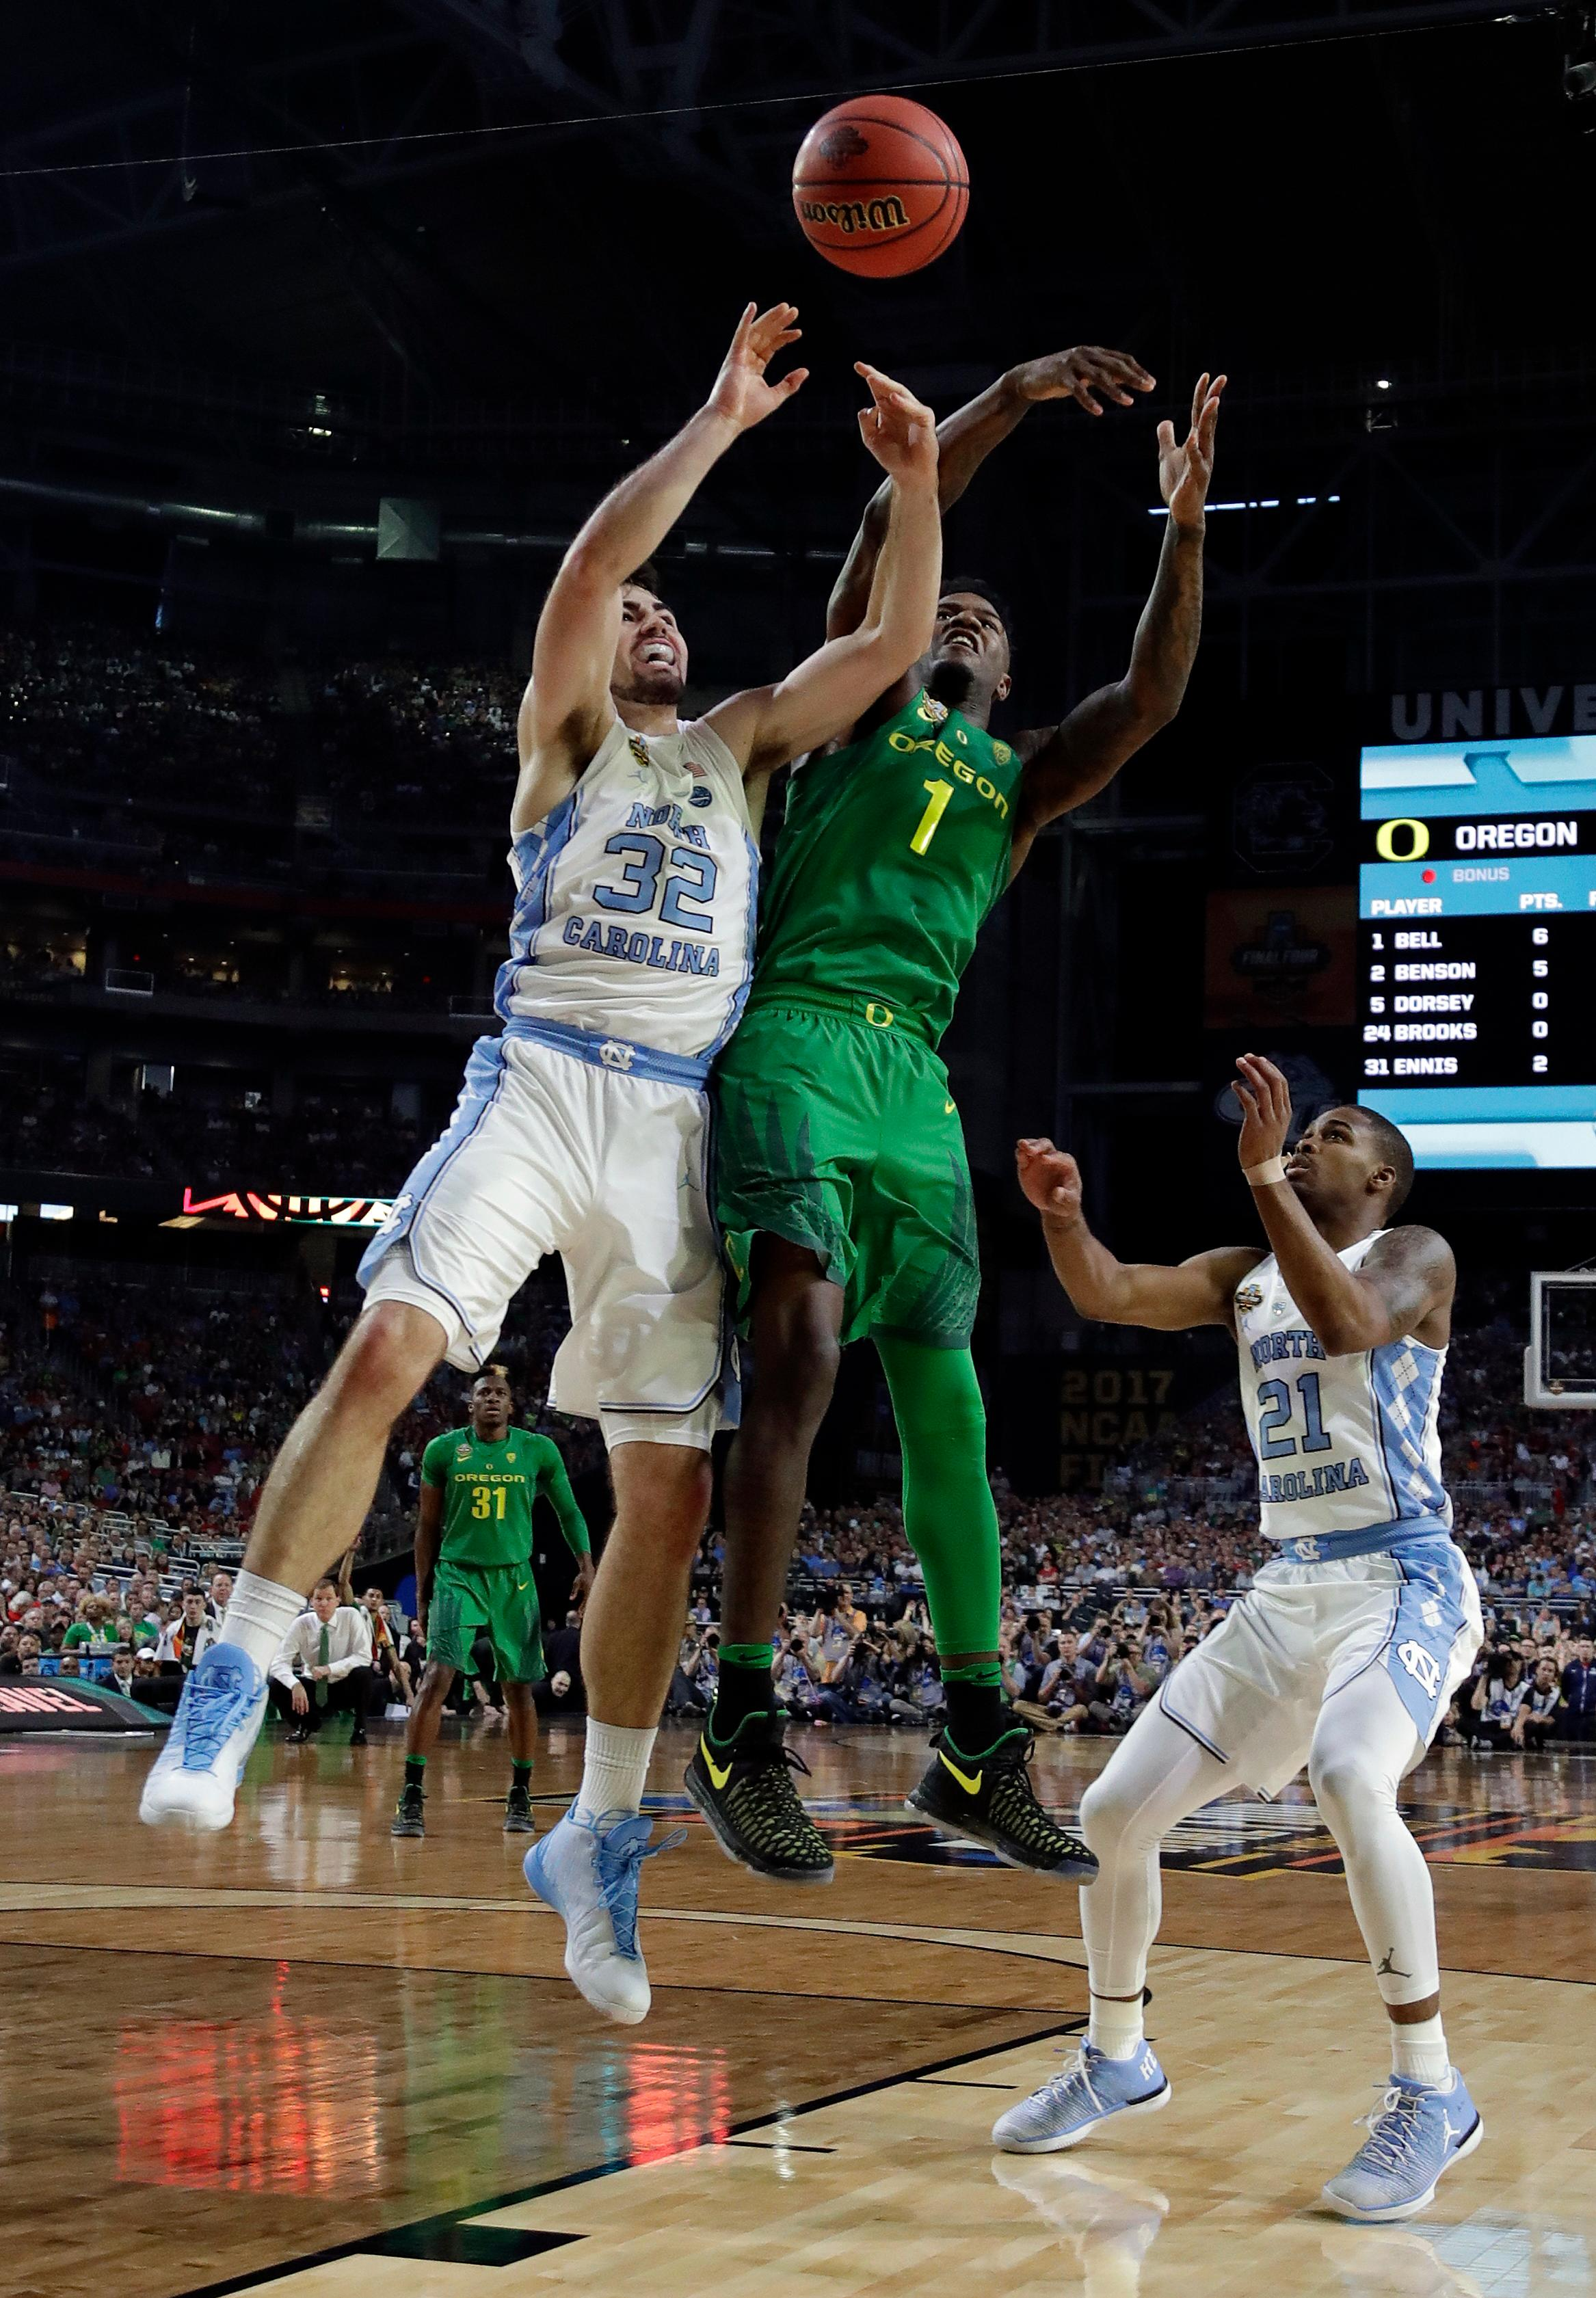 North Carolina's Luke Maye (32) and Oregon's Jordan Bell (1) battle for a rebound during the first half in the semifinals of the Final Four NCAA college basketball tournament, Saturday, April 1, 2017, in Glendale, Ariz. (AP Photo/David J. Phillip)